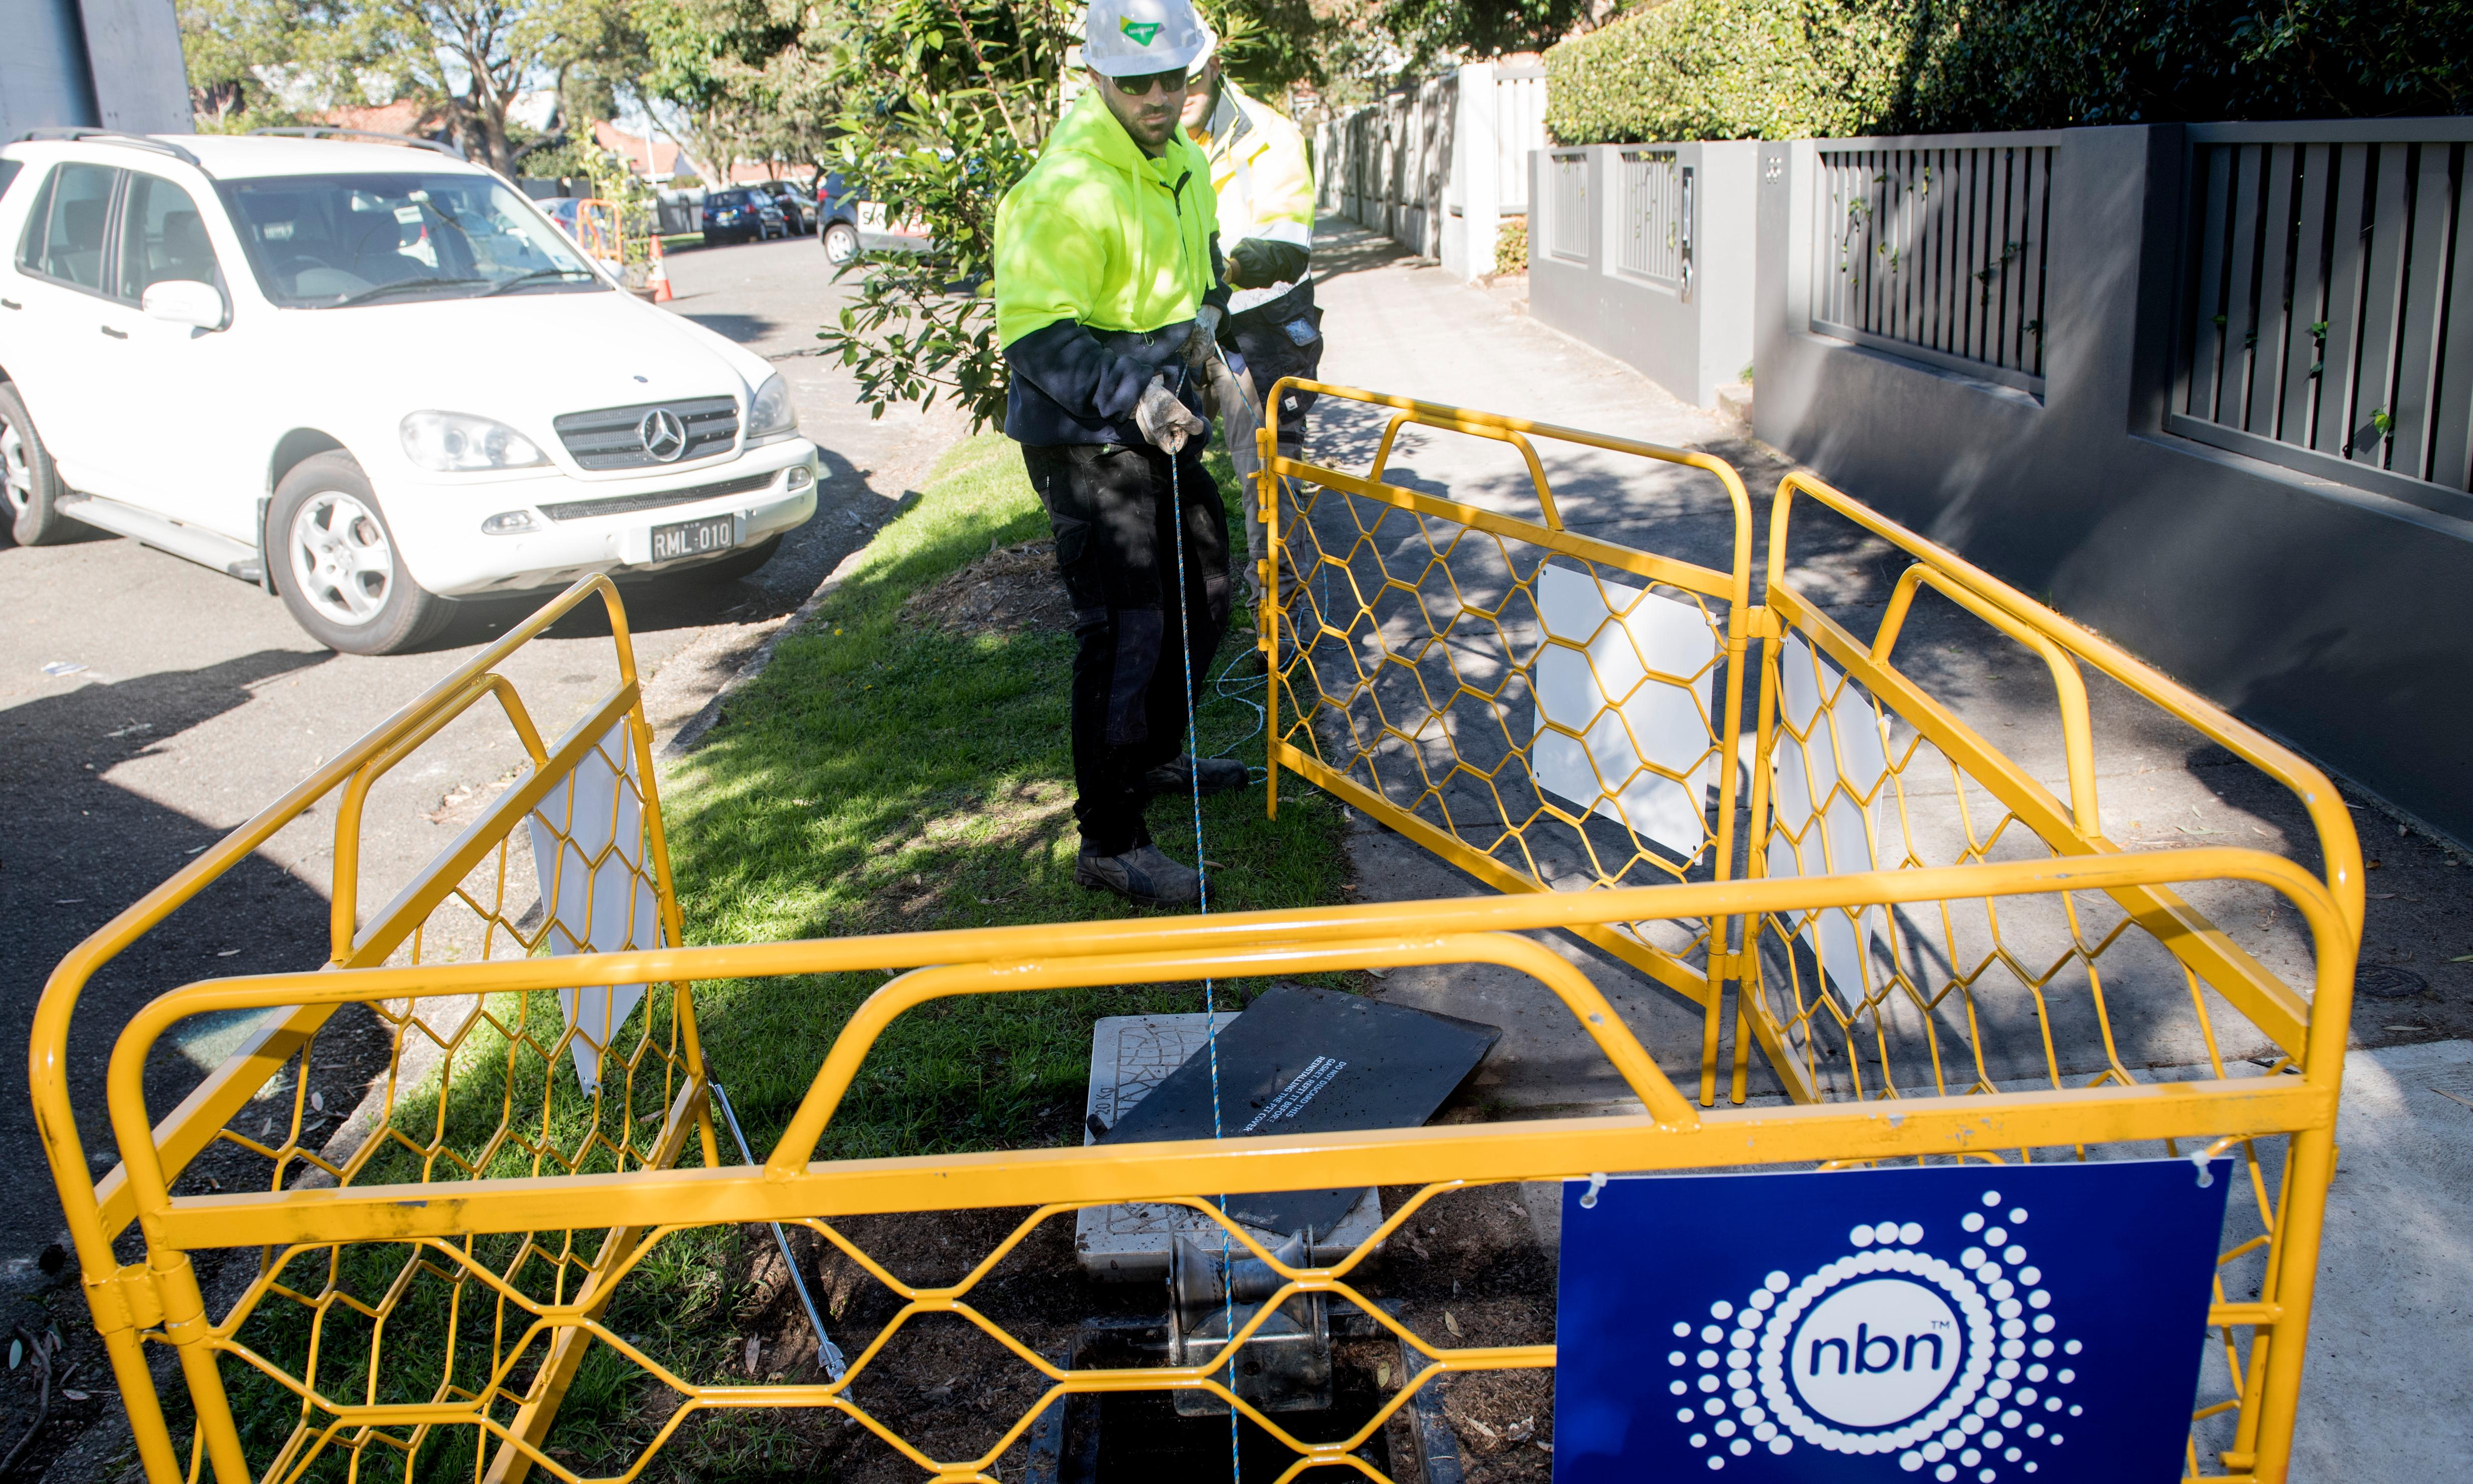 NBN close to completion as network build passes the 10m premises mark